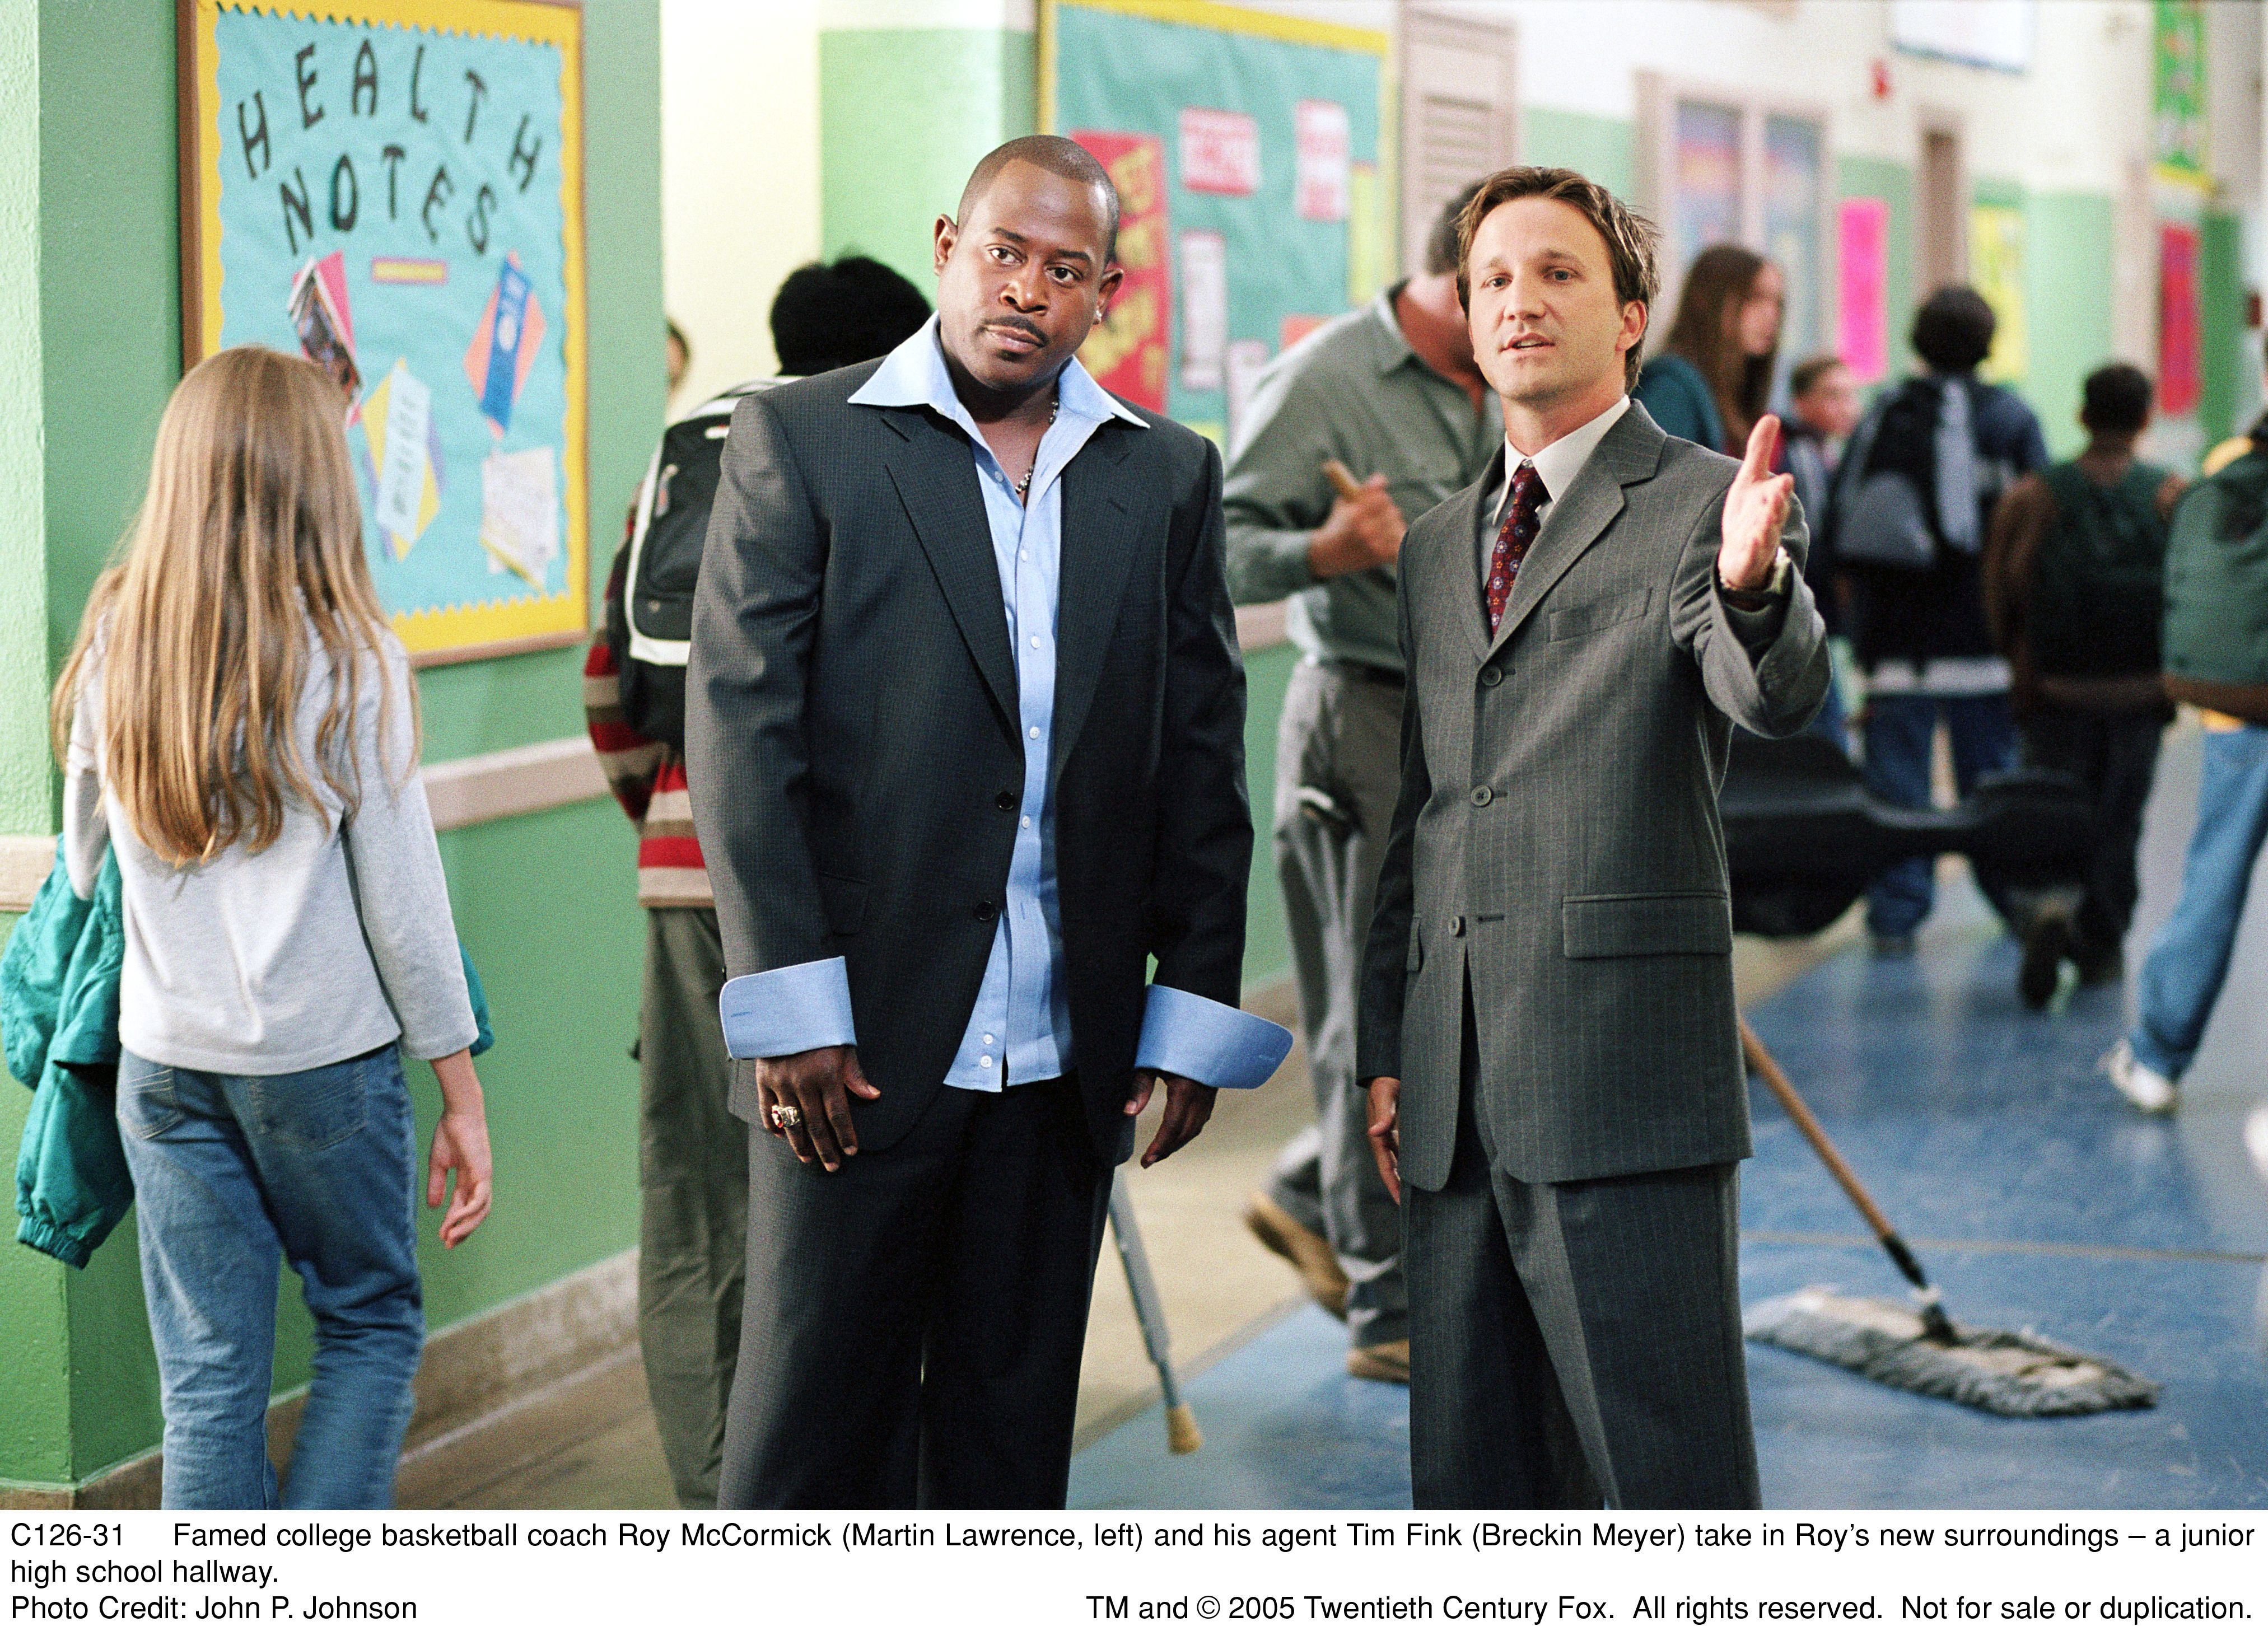 Martin Lawrence and Breckin Meyer in Rebound (2005)